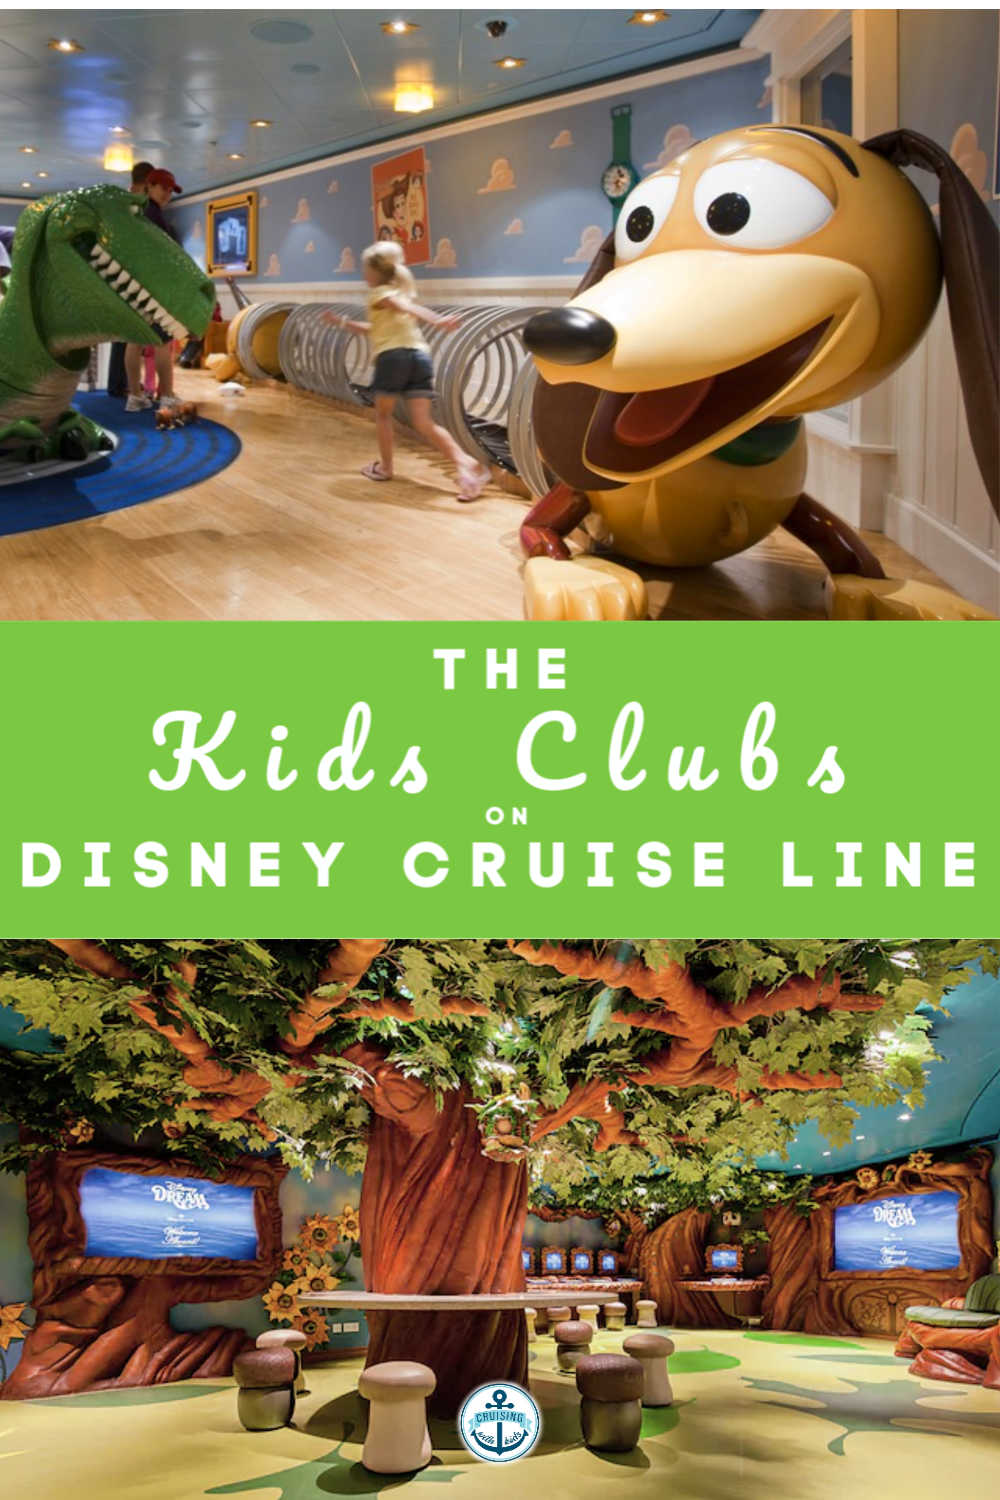 A guide for the kids clubs on Disney Cruise Line for children aded 3 to 12 cruising with Disney